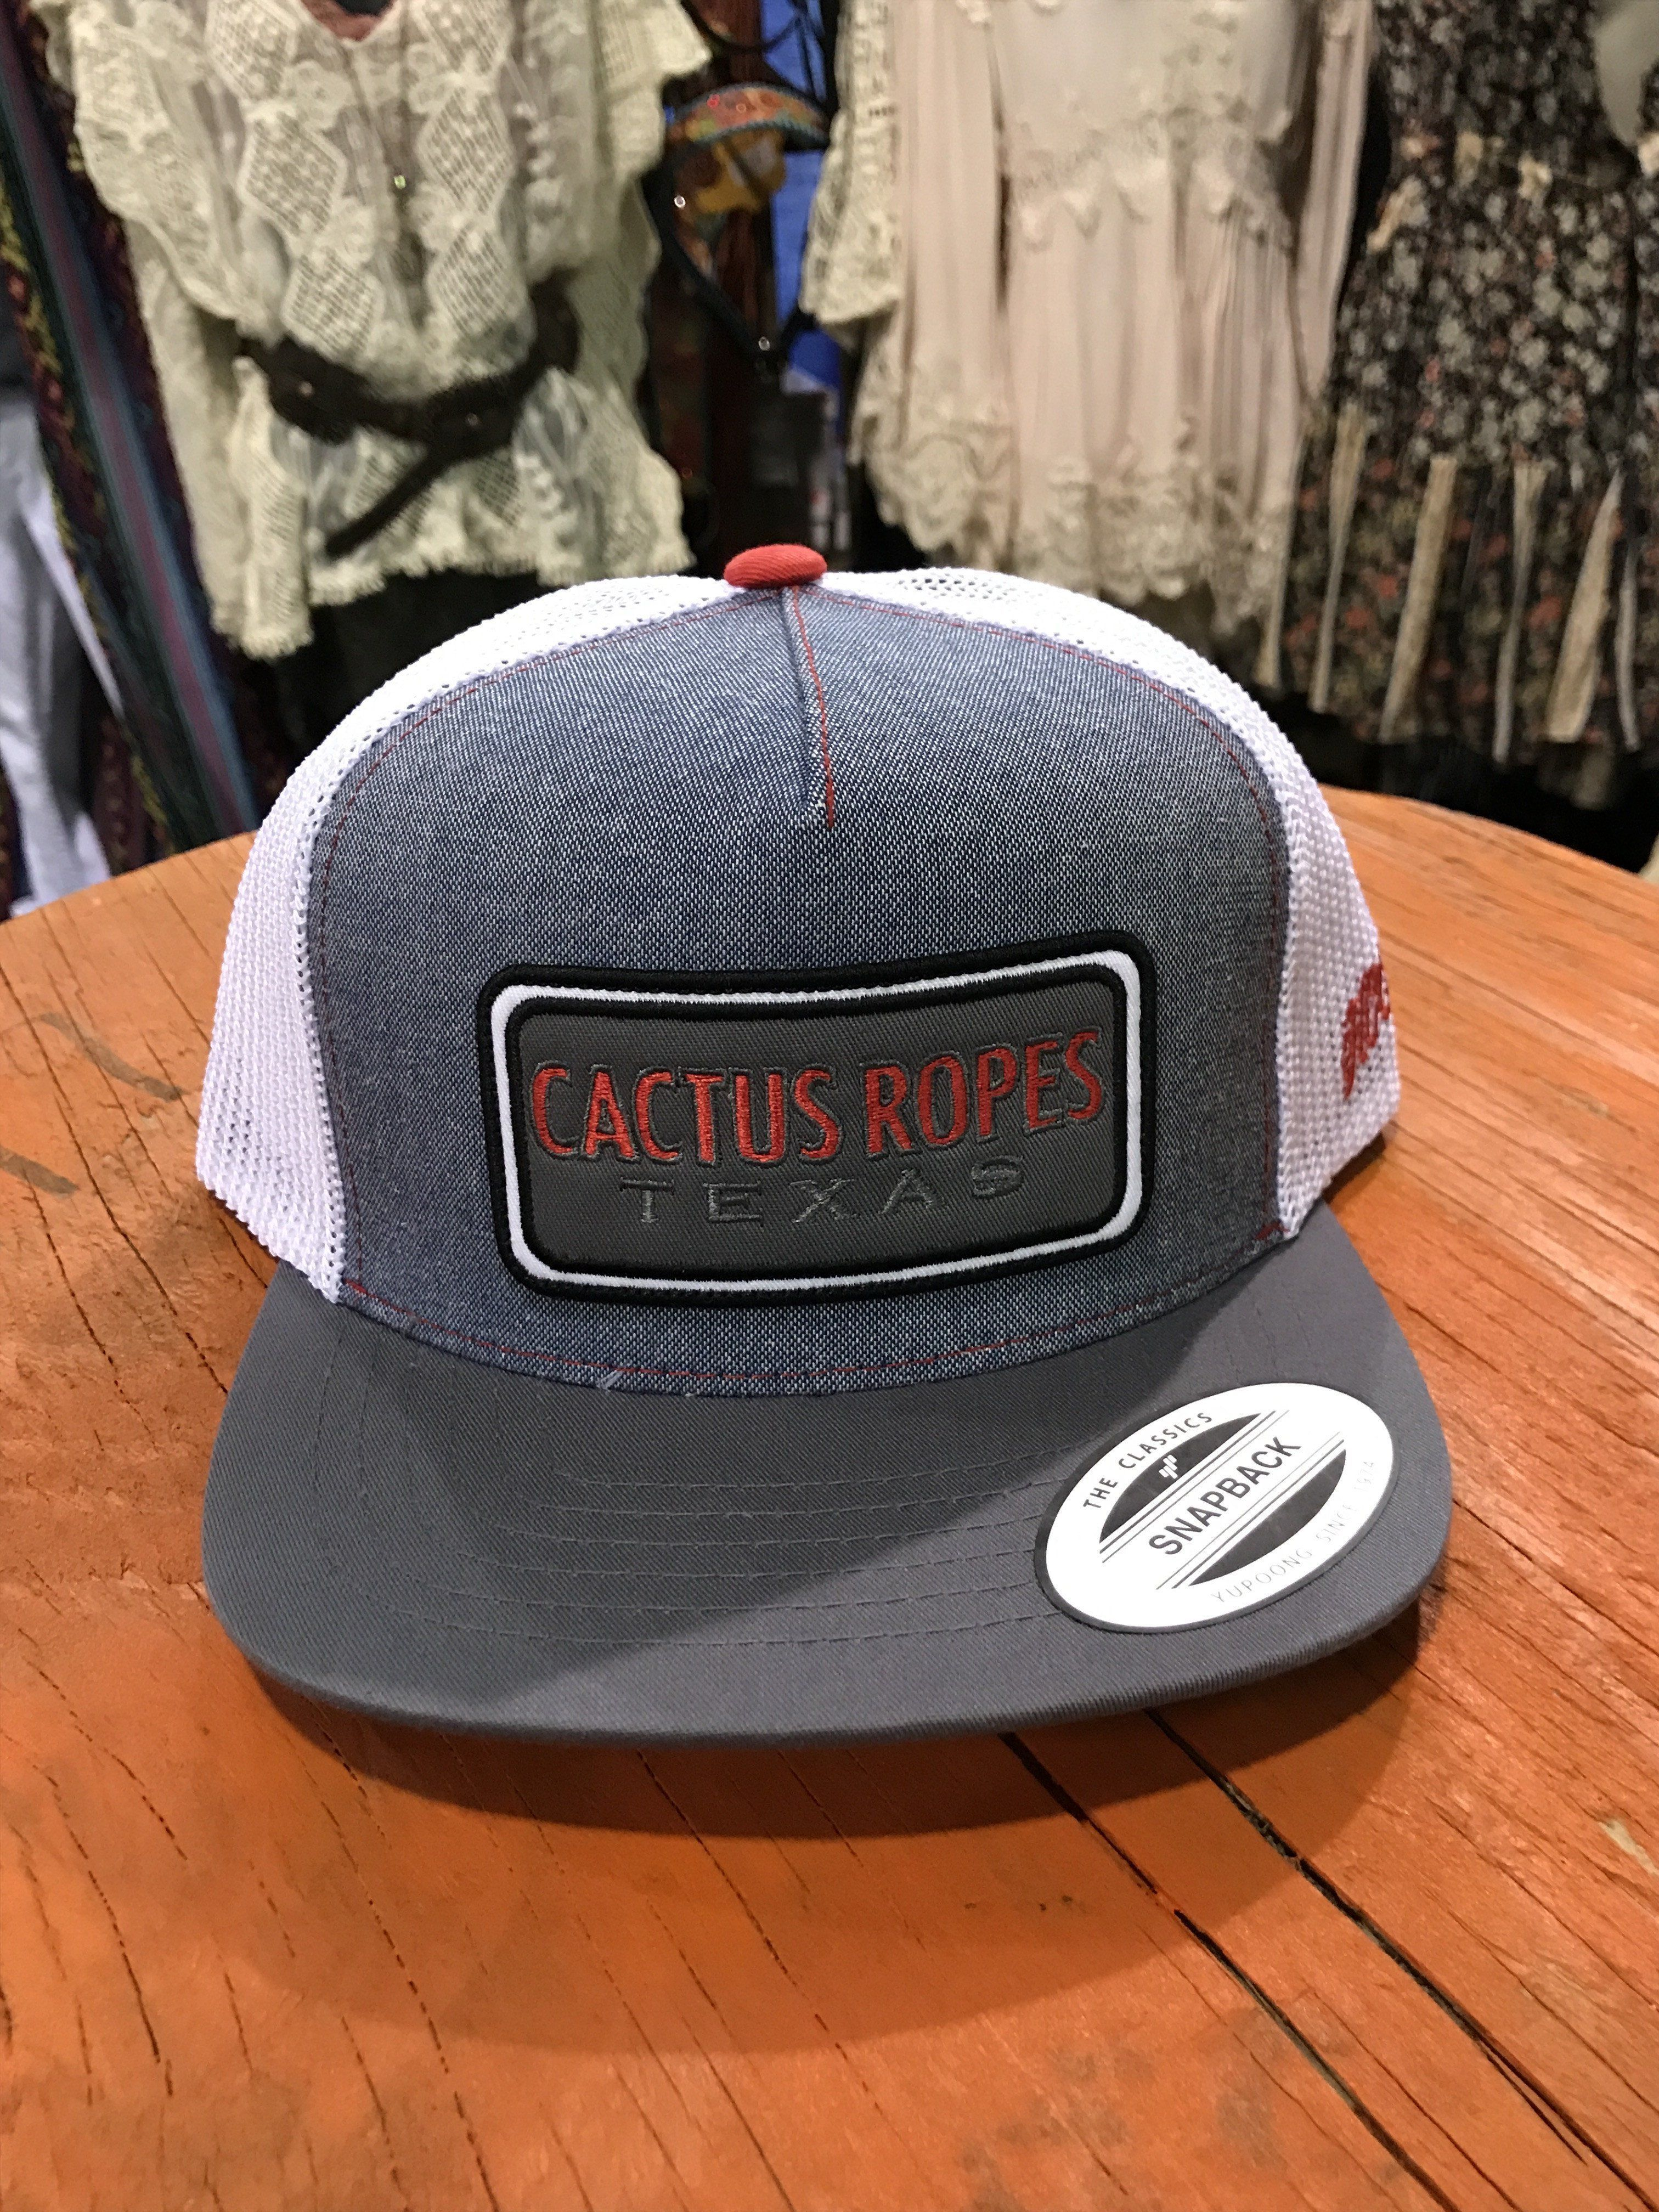 Hooey CR024Y Denim White Cactus Ropes Trucker Hooey Hat  9af58e4b289